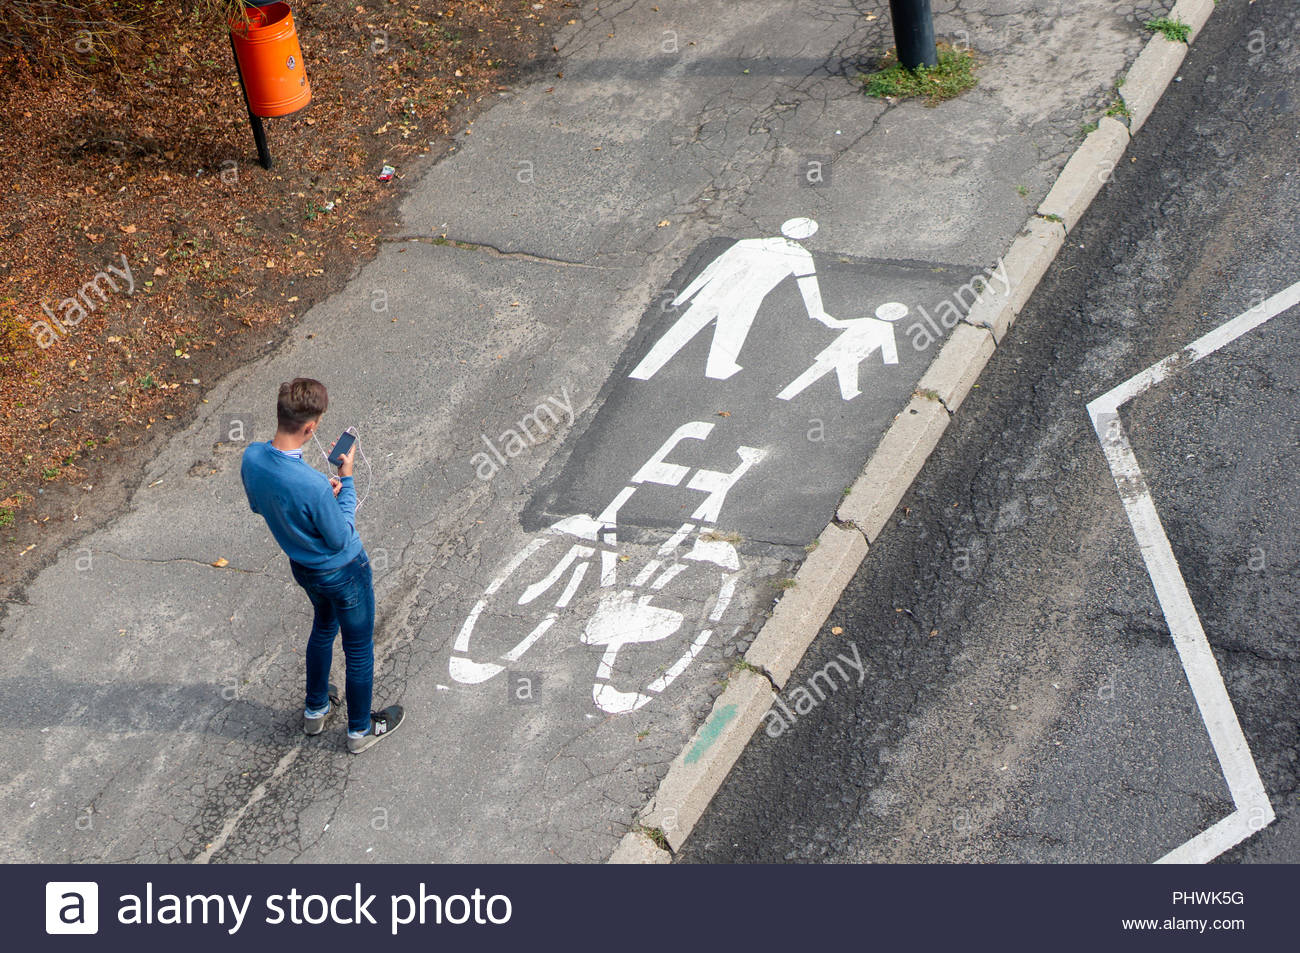 Young man looking at his phone while standing on a sidewalk for bicycles and pedestrians in the city from aerial perspective - Stock Image